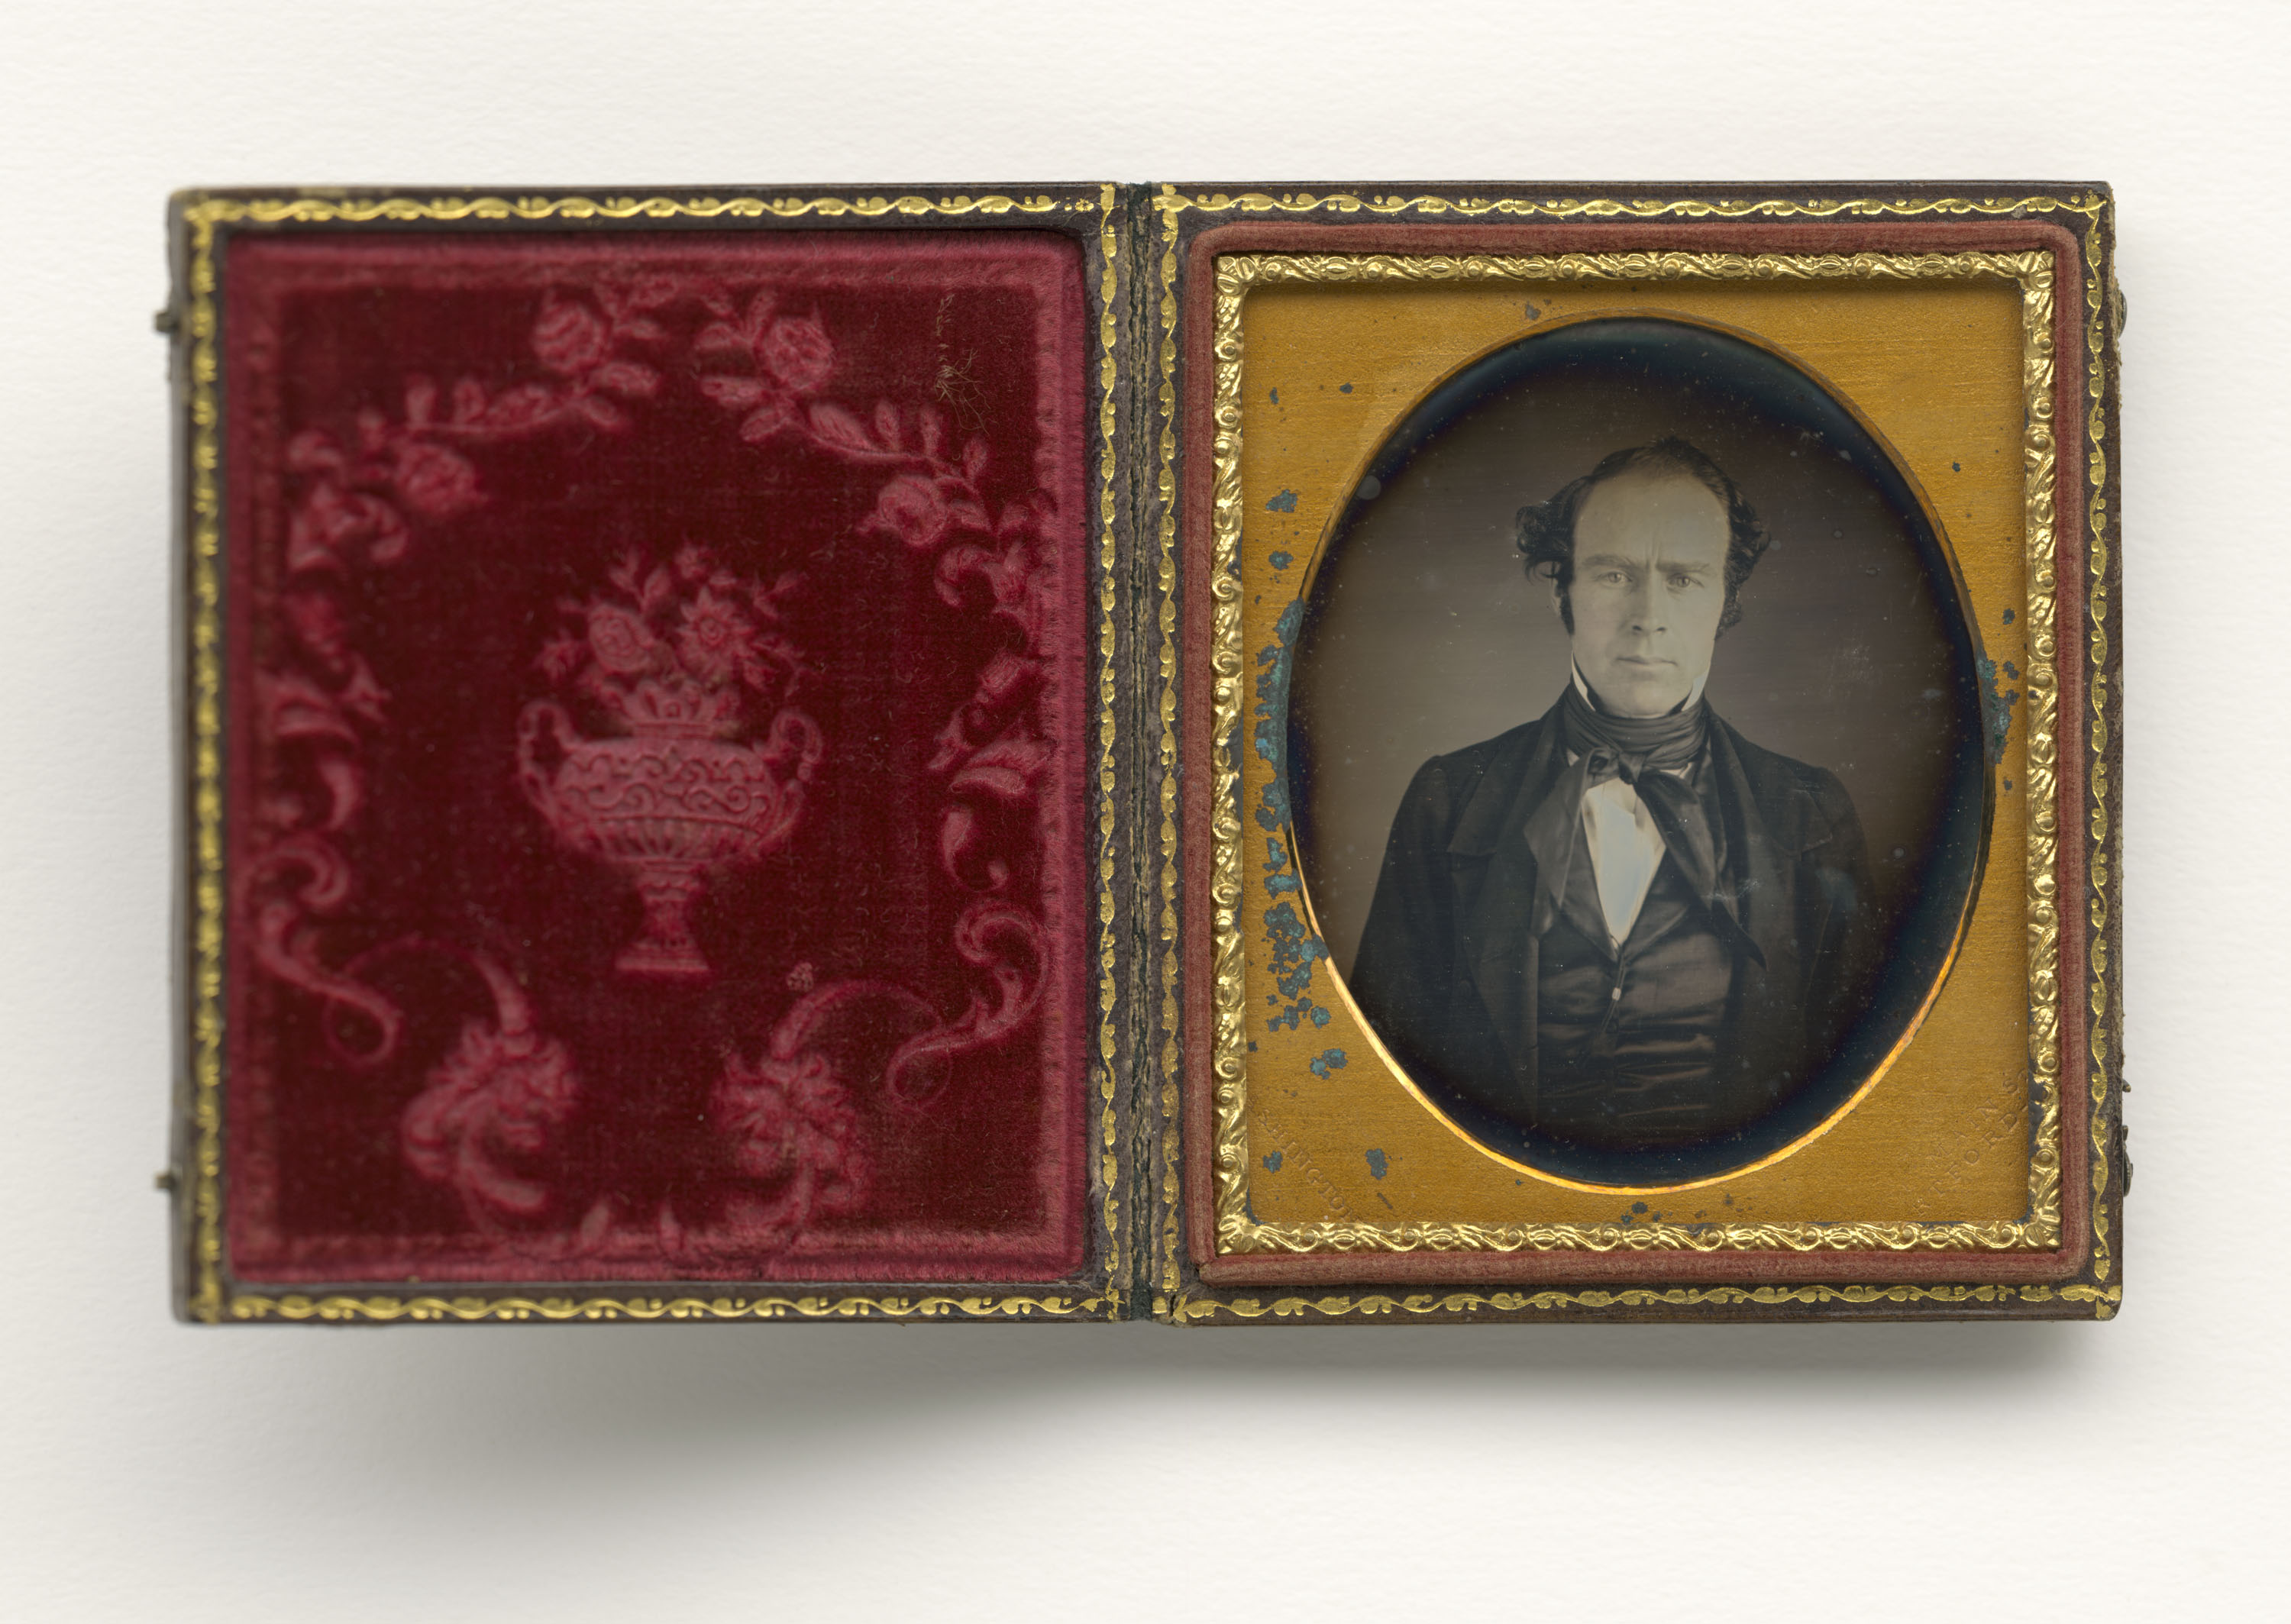 Daguerreotype photograph of a white man taken by Augustus Washington ca. 1850. Washington opened a photo studio in Connecticut in 1843 and advertised in abolitionist papers; he immigrated to Liberia in 1853.